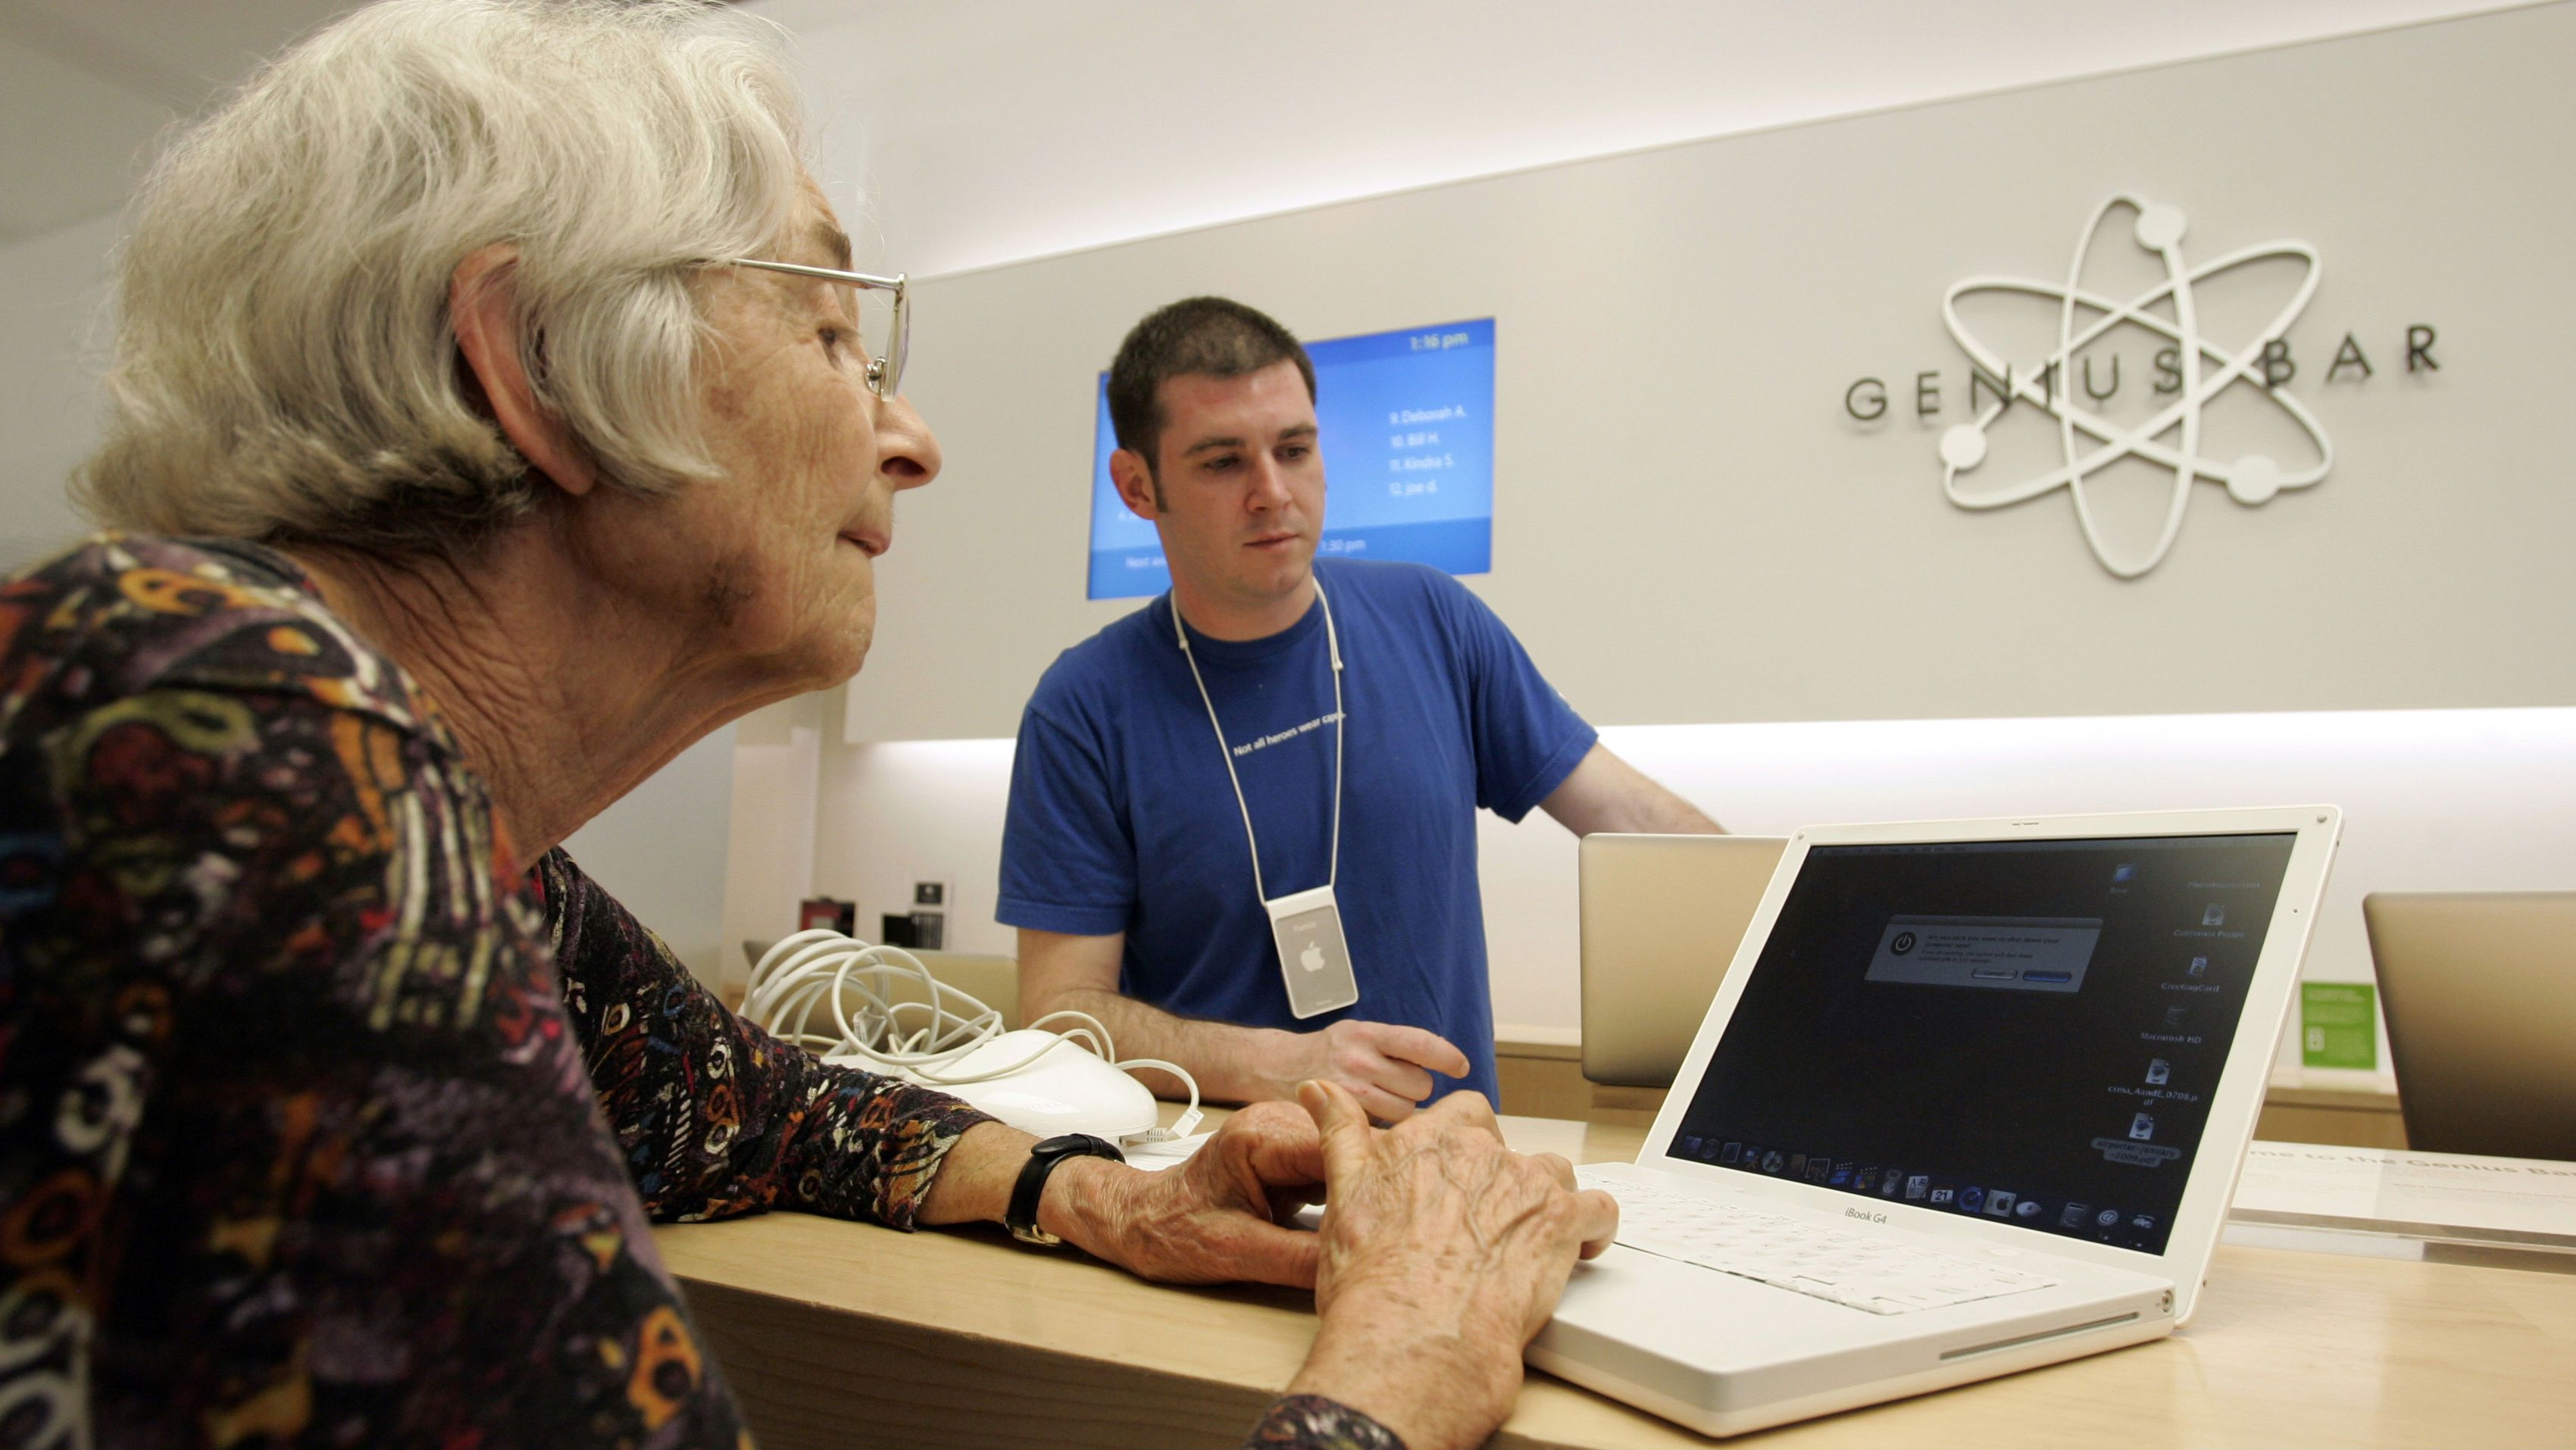 In this April 21, 2009 photo, a customer enlists the help of a store employee at the Genius Bar at an Apple store in Palo Alto, Calif. Apple Inc. says its profit jumped 15 percent in the last quarter, well ahead of Wall Street's expectations despite the global economic downturn. (AP Photo/Paul Sakuma)